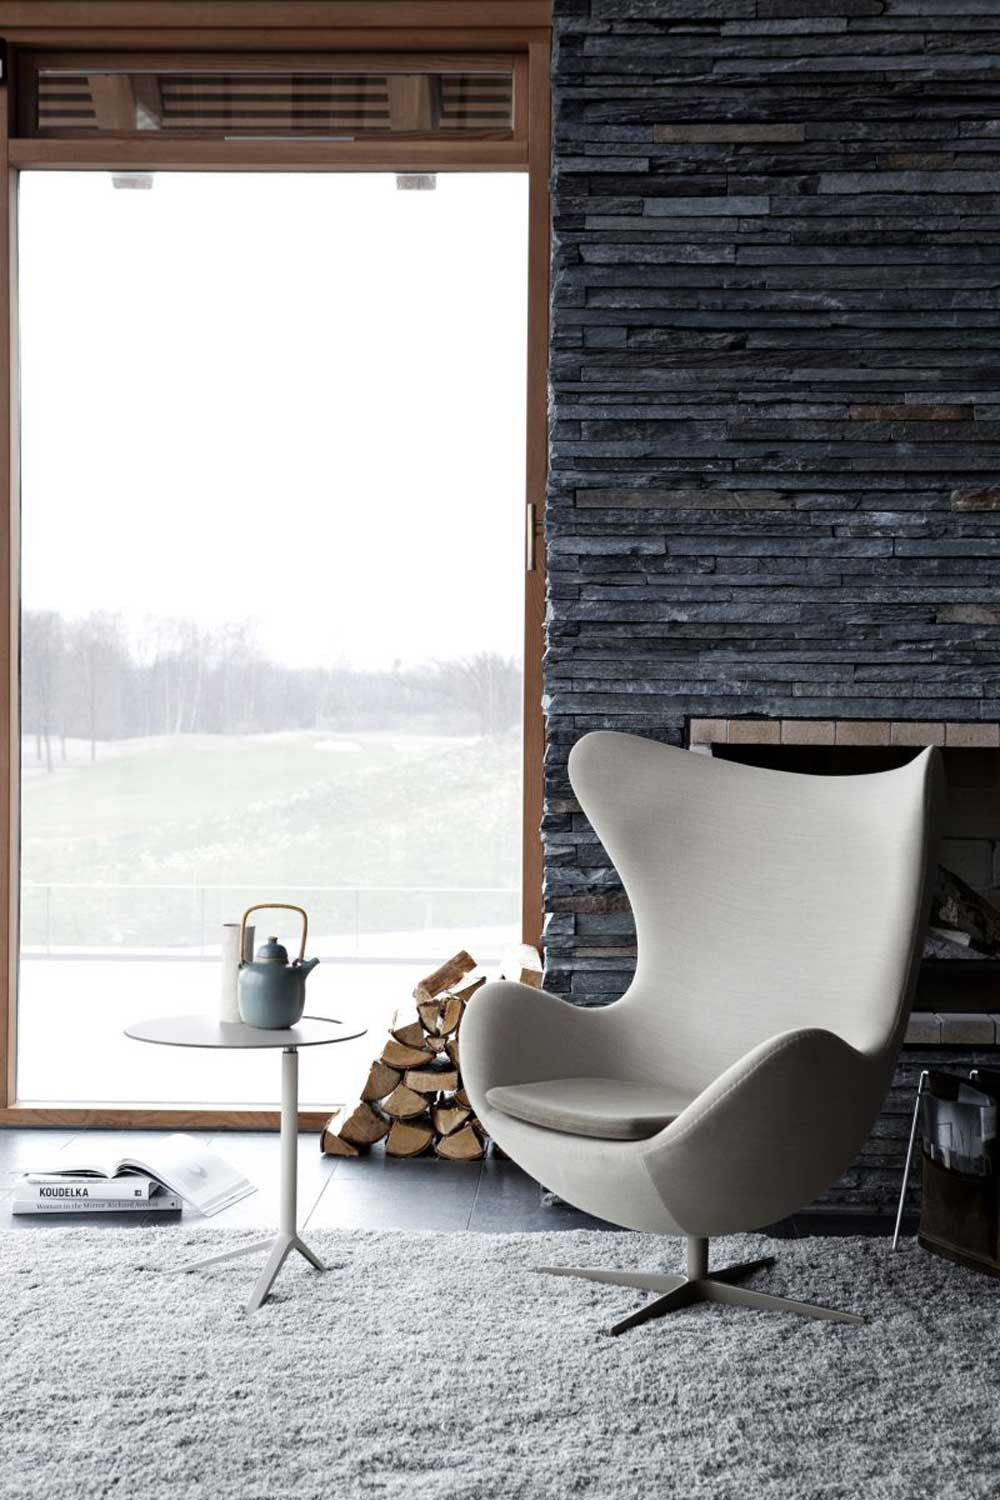 Arne jacobsen egg chair white - Arne Jacobsen Egg Chair Grey Fabric